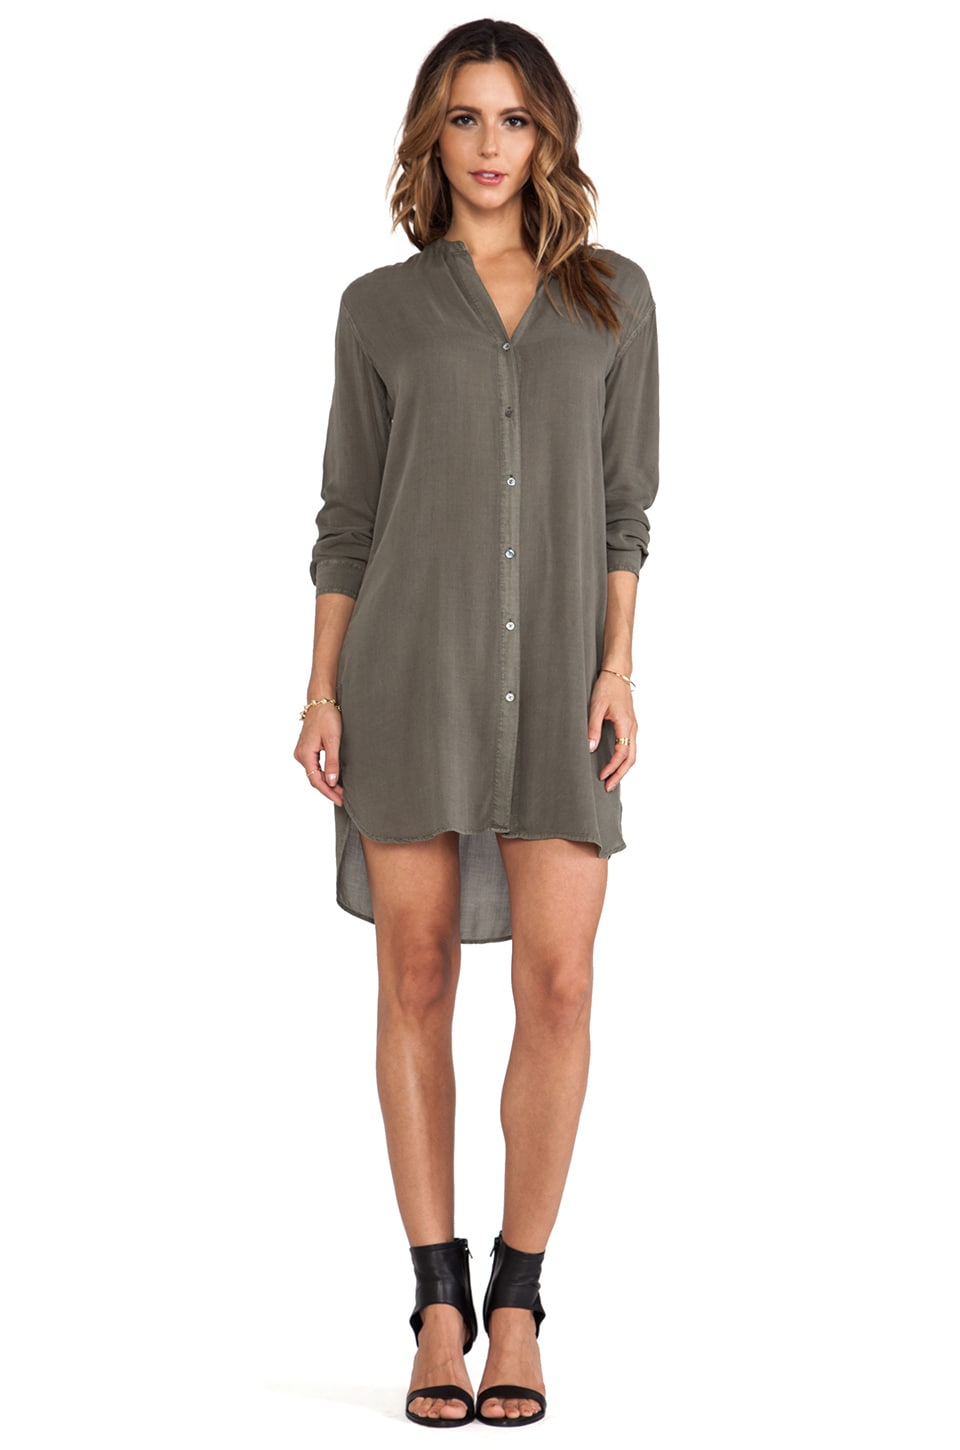 James Perse Collarless Shirt Dress in Safari